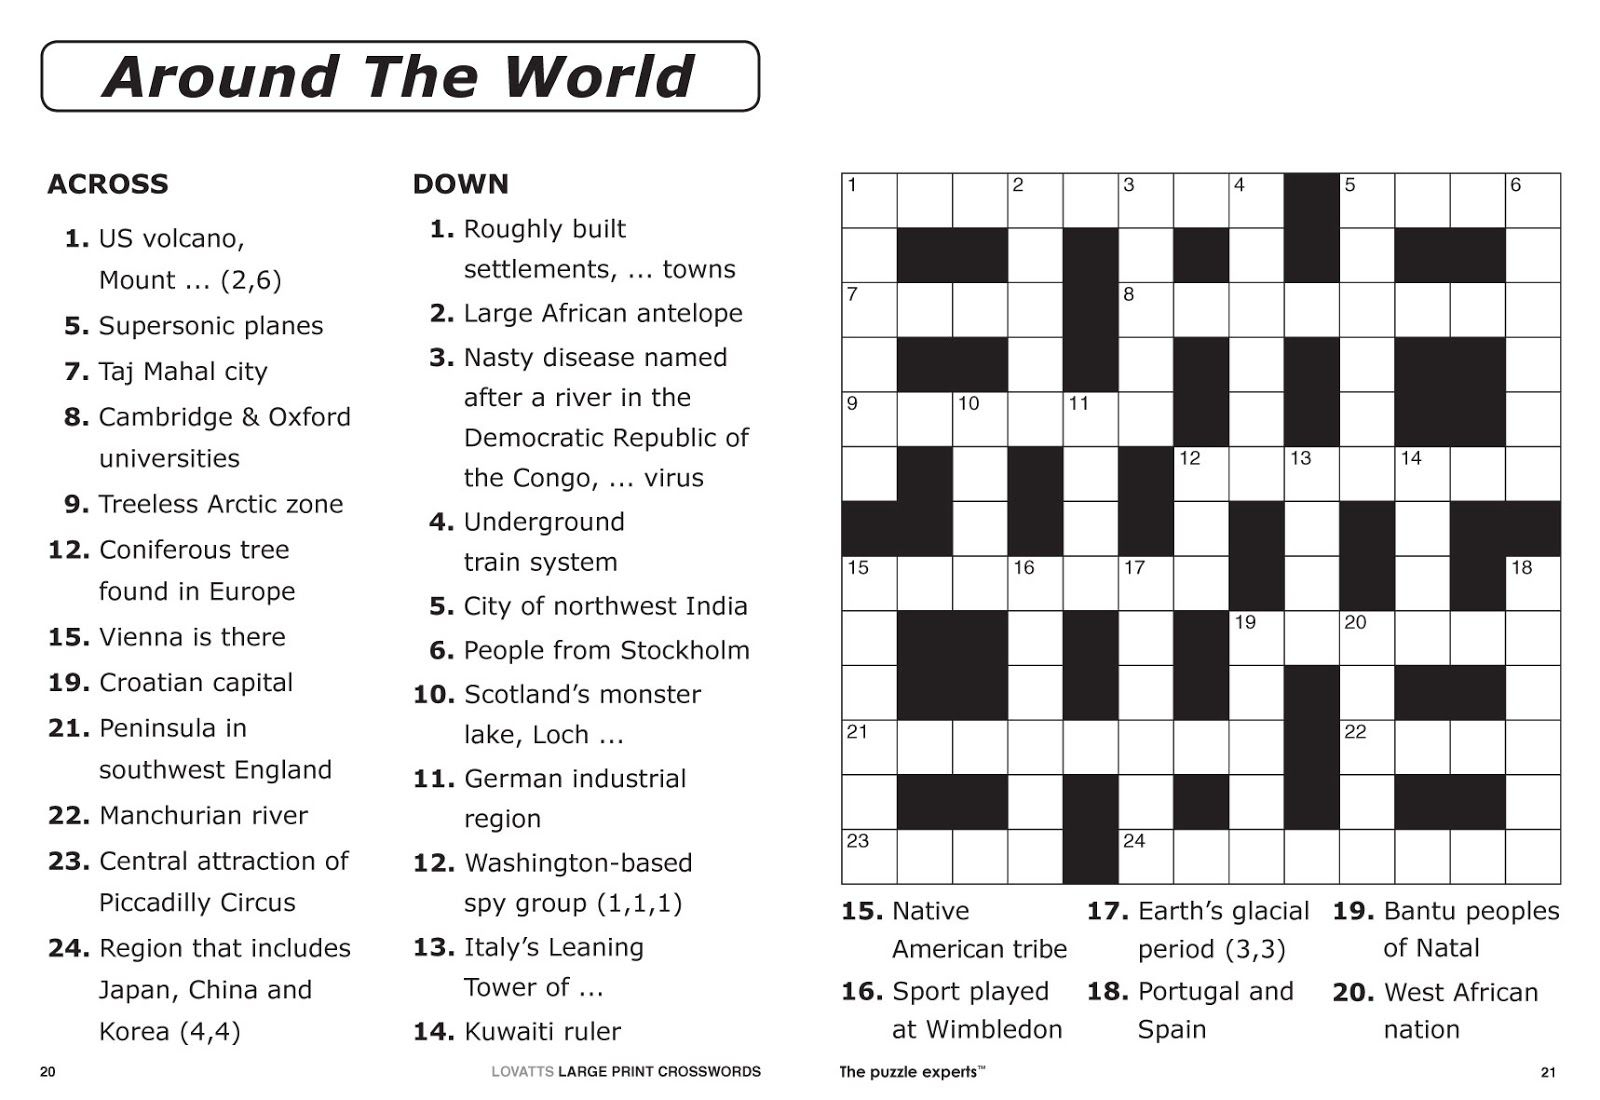 picture about Harry Potter Crossword Puzzle Printable identify Printable Tough Crossword Puzzles Free of charge Printable Crossword